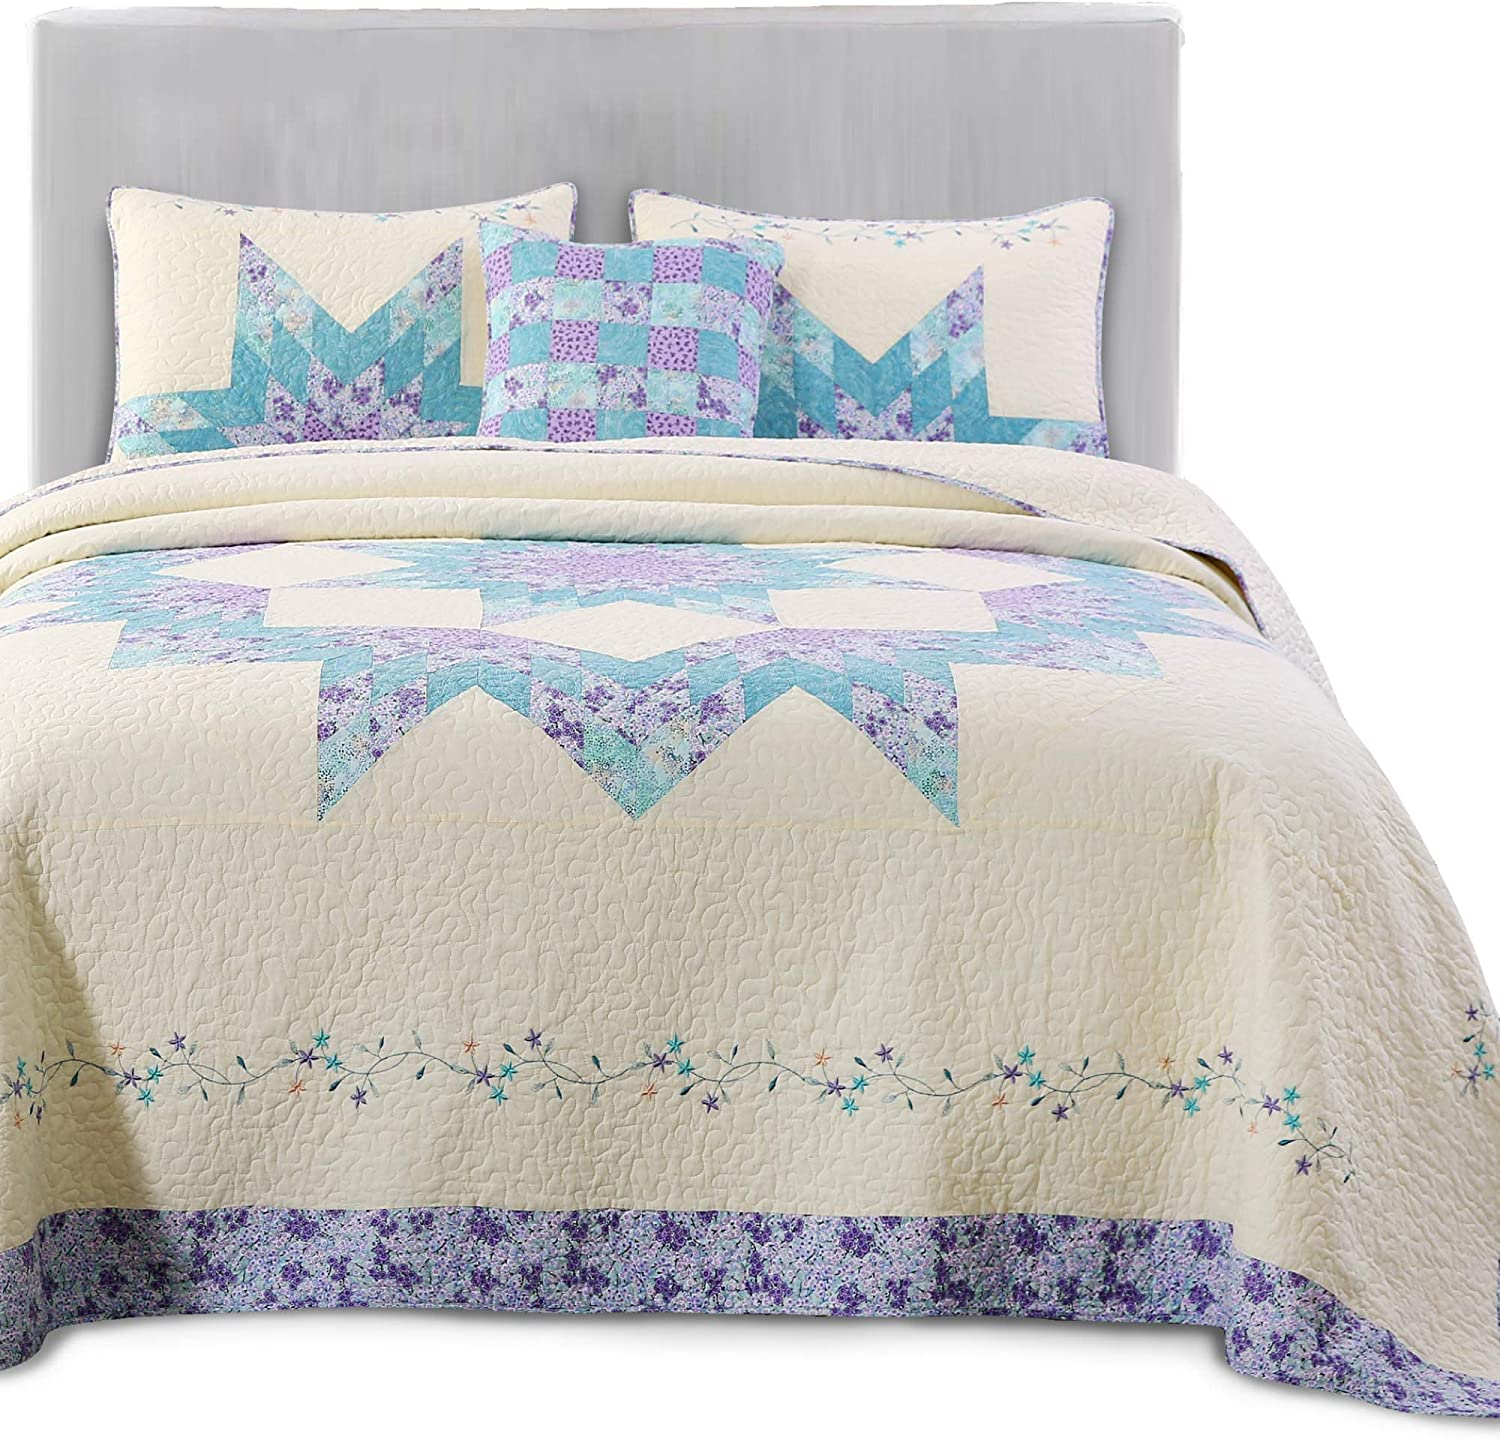 KASENTEX Luxurious Patchwork SEAL limited product Bedspread Embroidery 100% Coverlet Max 70% OFF